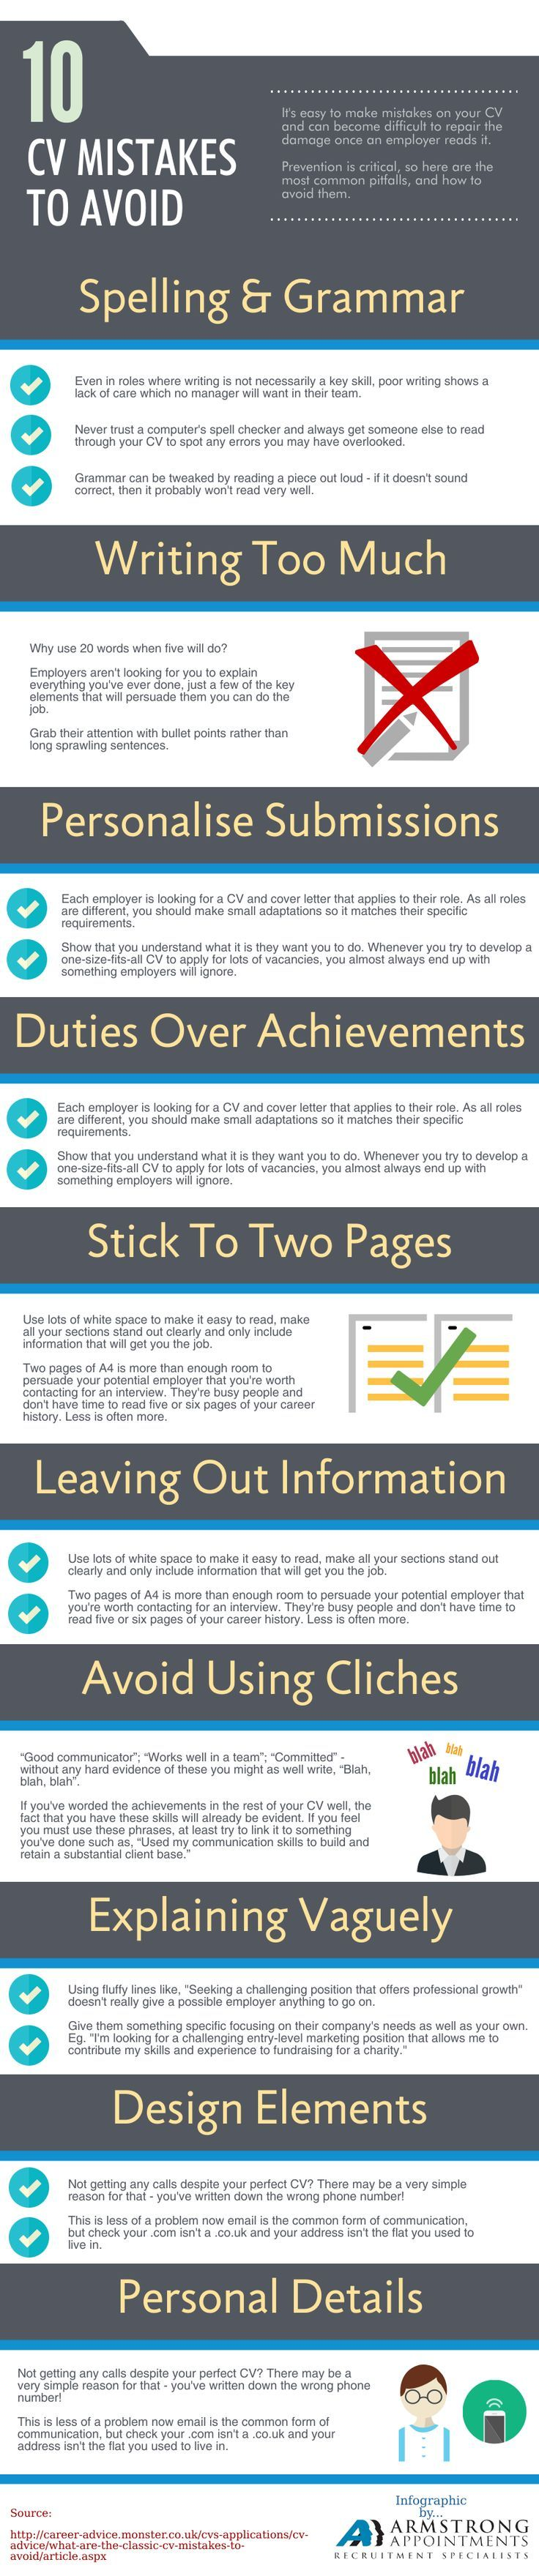 What are the 10 Common CV Mistakes you Must Avoid? http://theundercoverrecruiter.com/cv-mistakes-to-avoid/